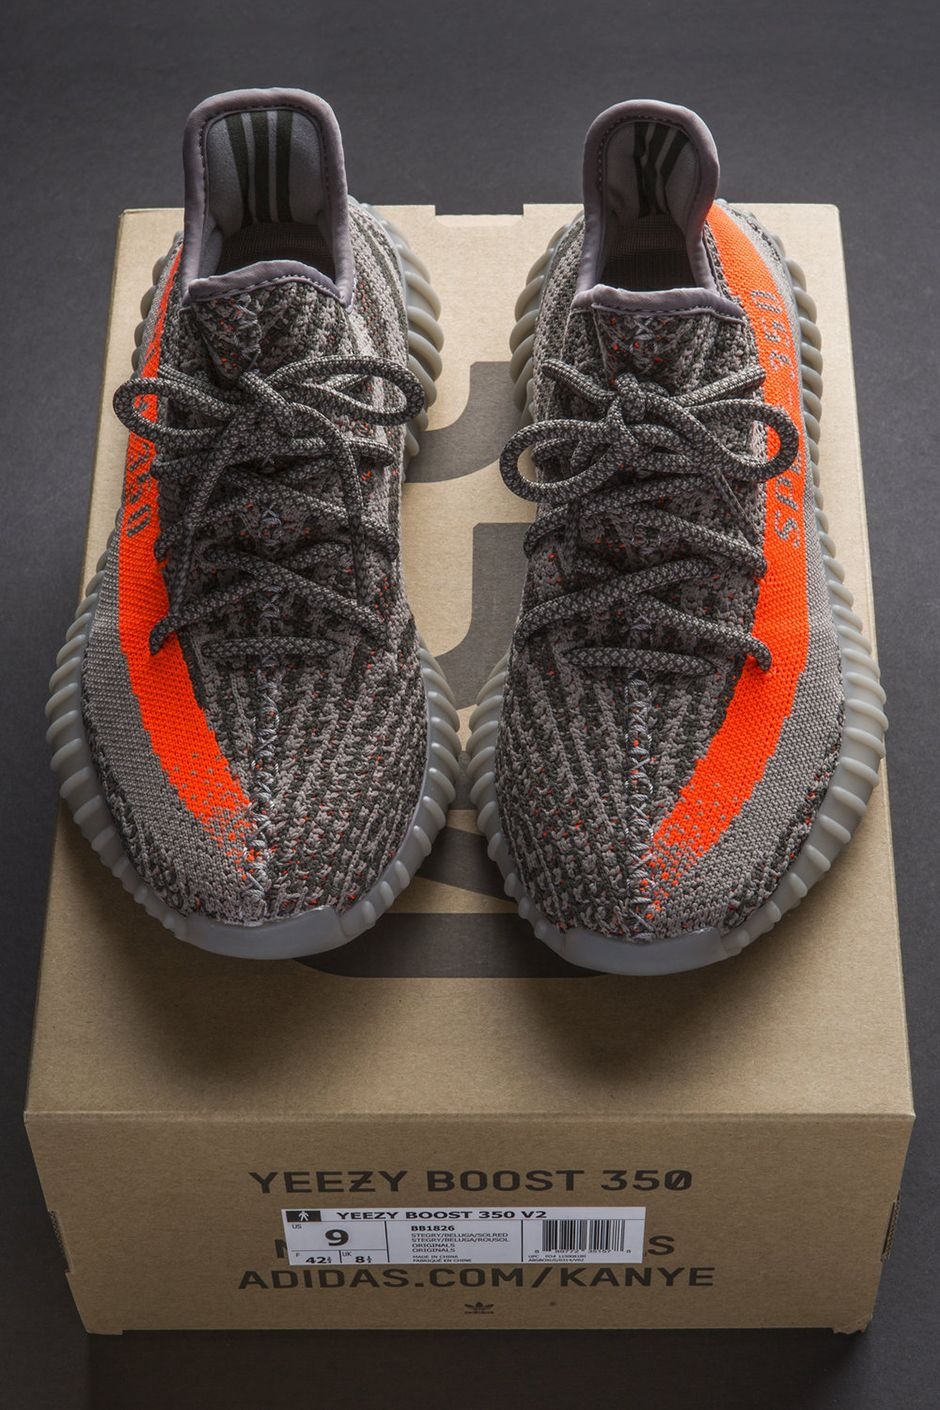 yeezy boost beluga 2.0 price